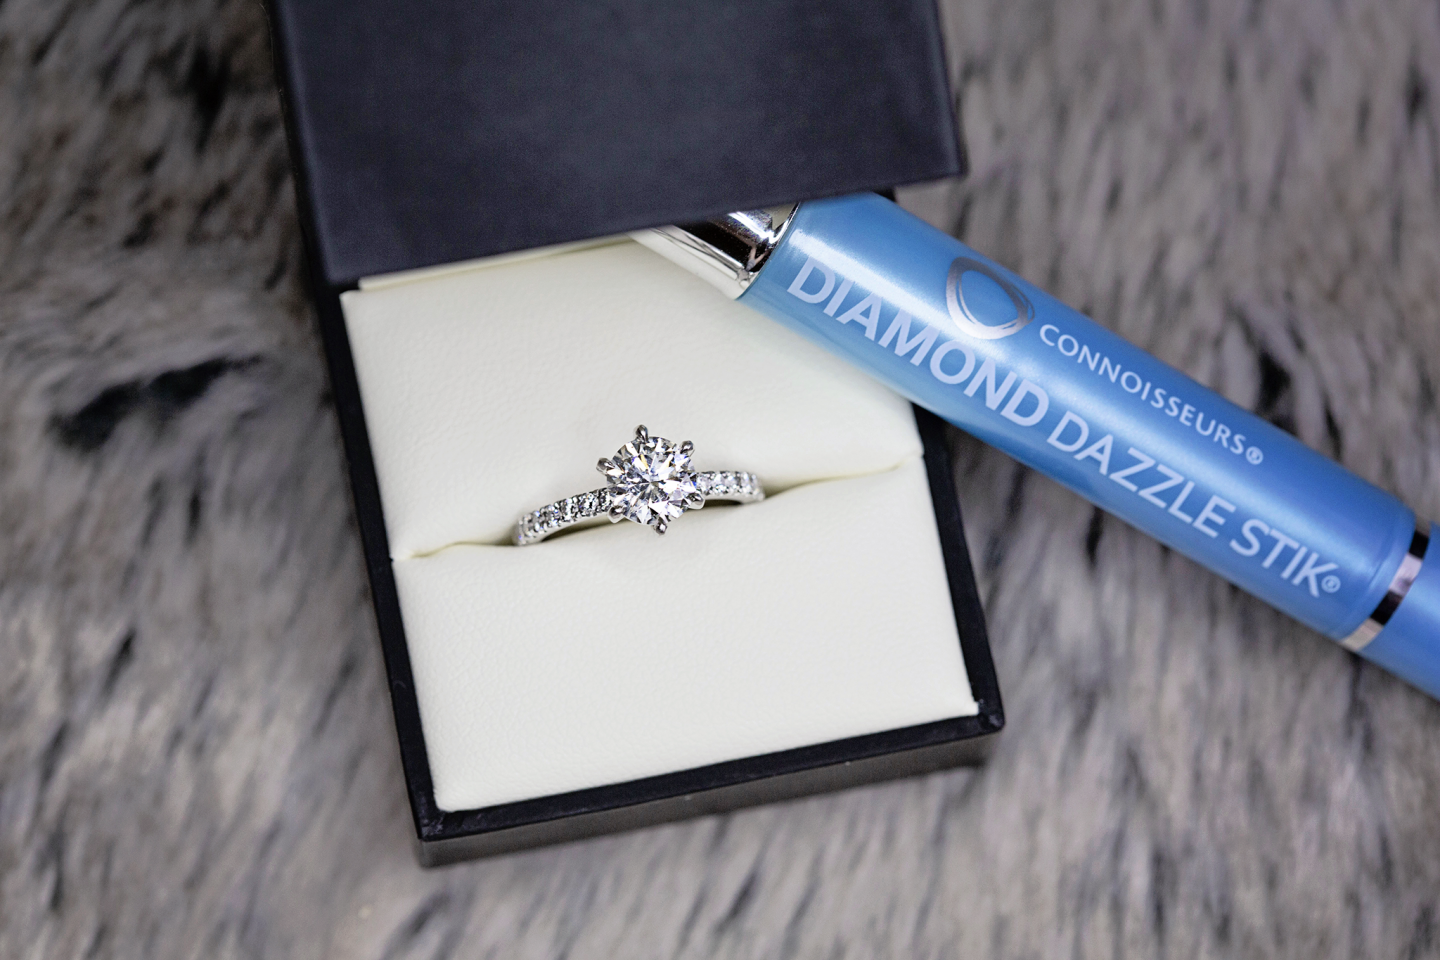 I'd recommend getting a Diamond Dazzle Stik to make your ring shine bright!